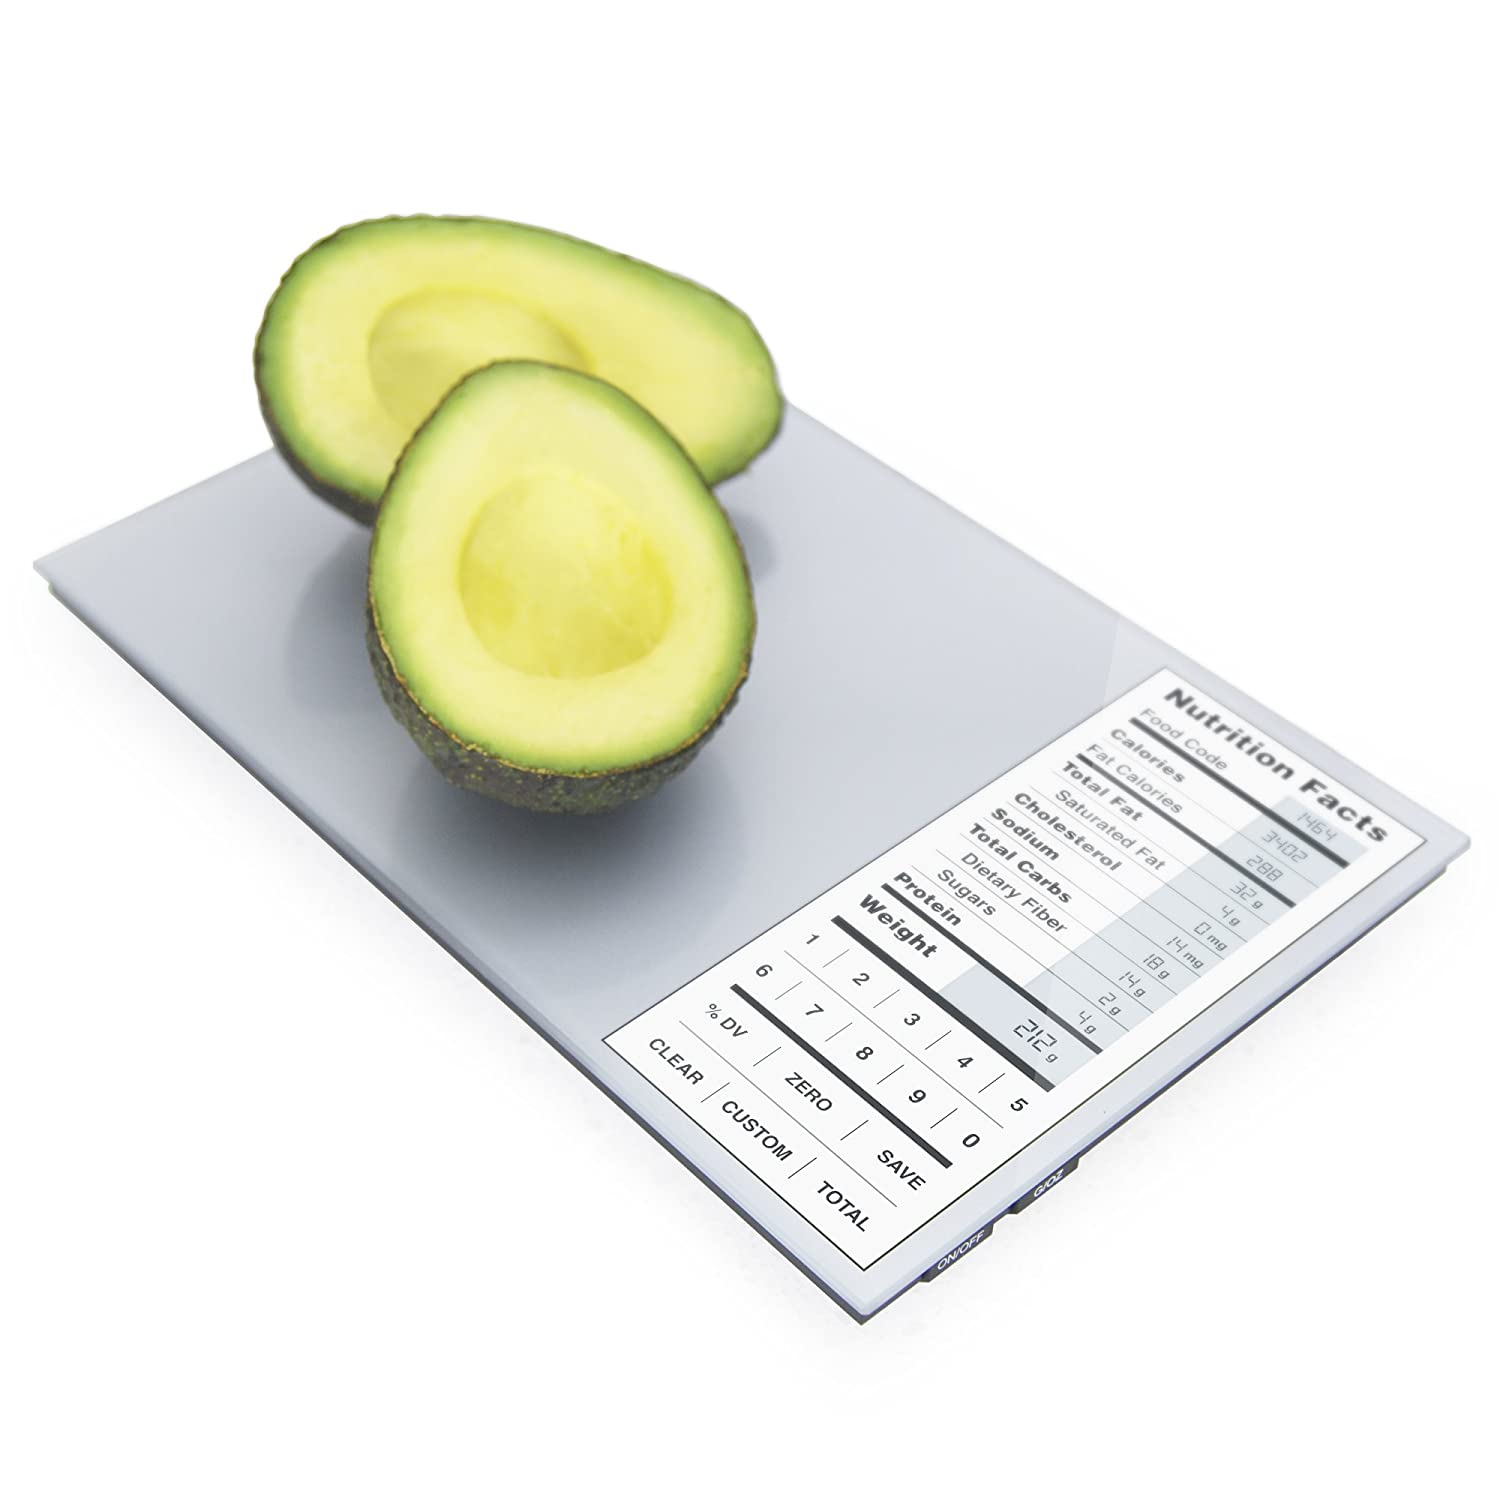 Digital Nutritional Scale